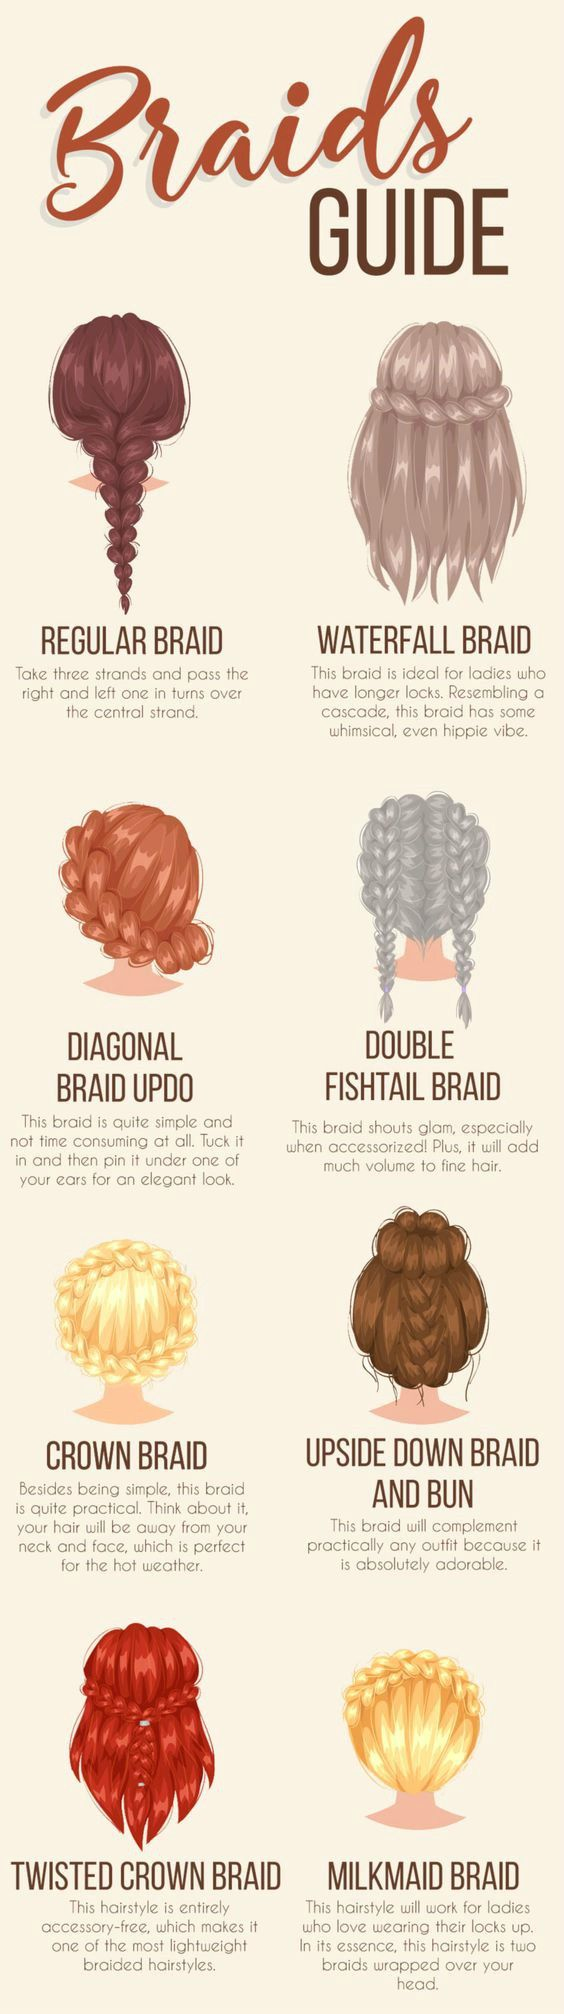 braids beautyful quick u easy hairstyles for girls diets that